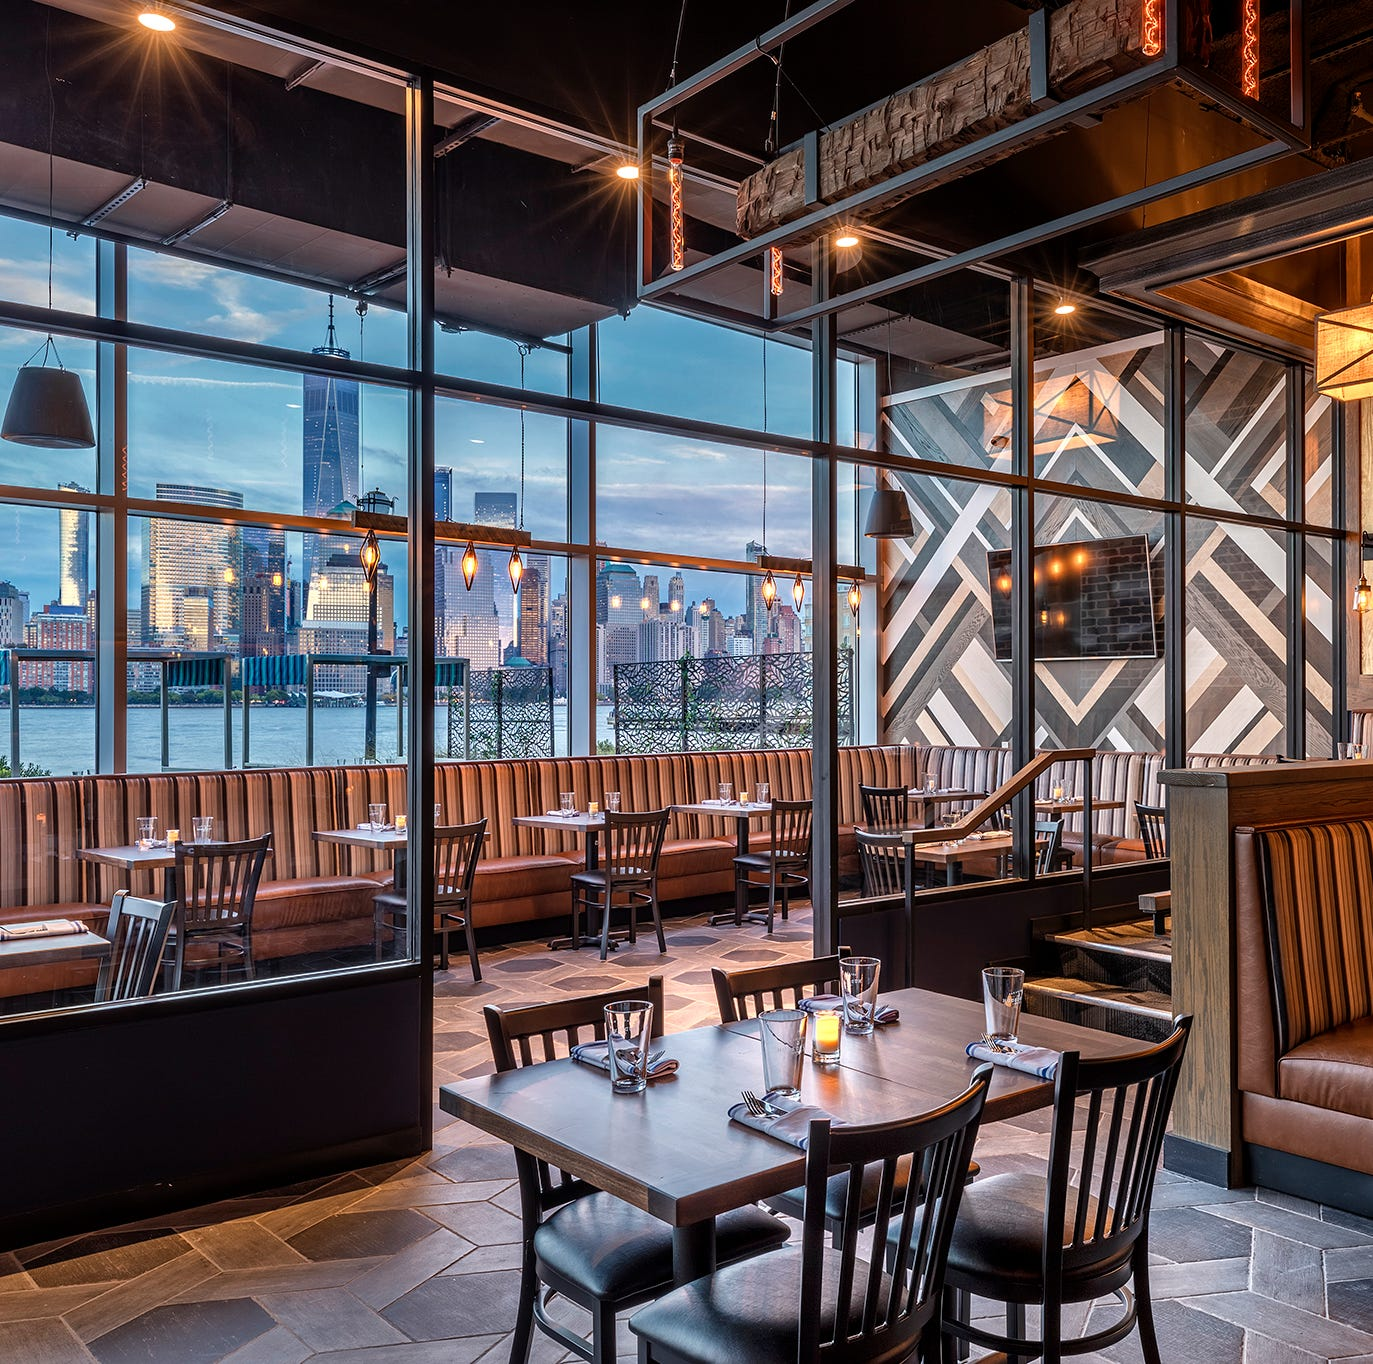 Hudson & Co., a gastropub with a Manhattan view, opening soon on Jersey City waterfront